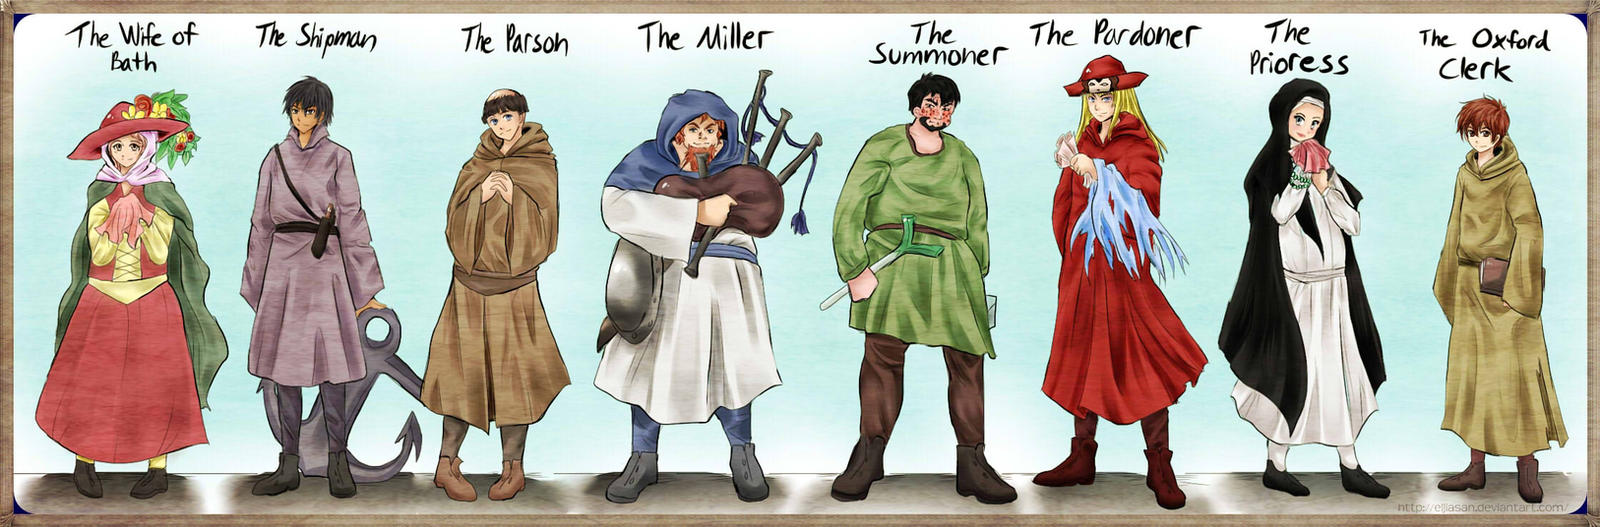 the canterbury tales by eljiasan on the canterbury tales by eljiasan the canterbury tales by eljiasan